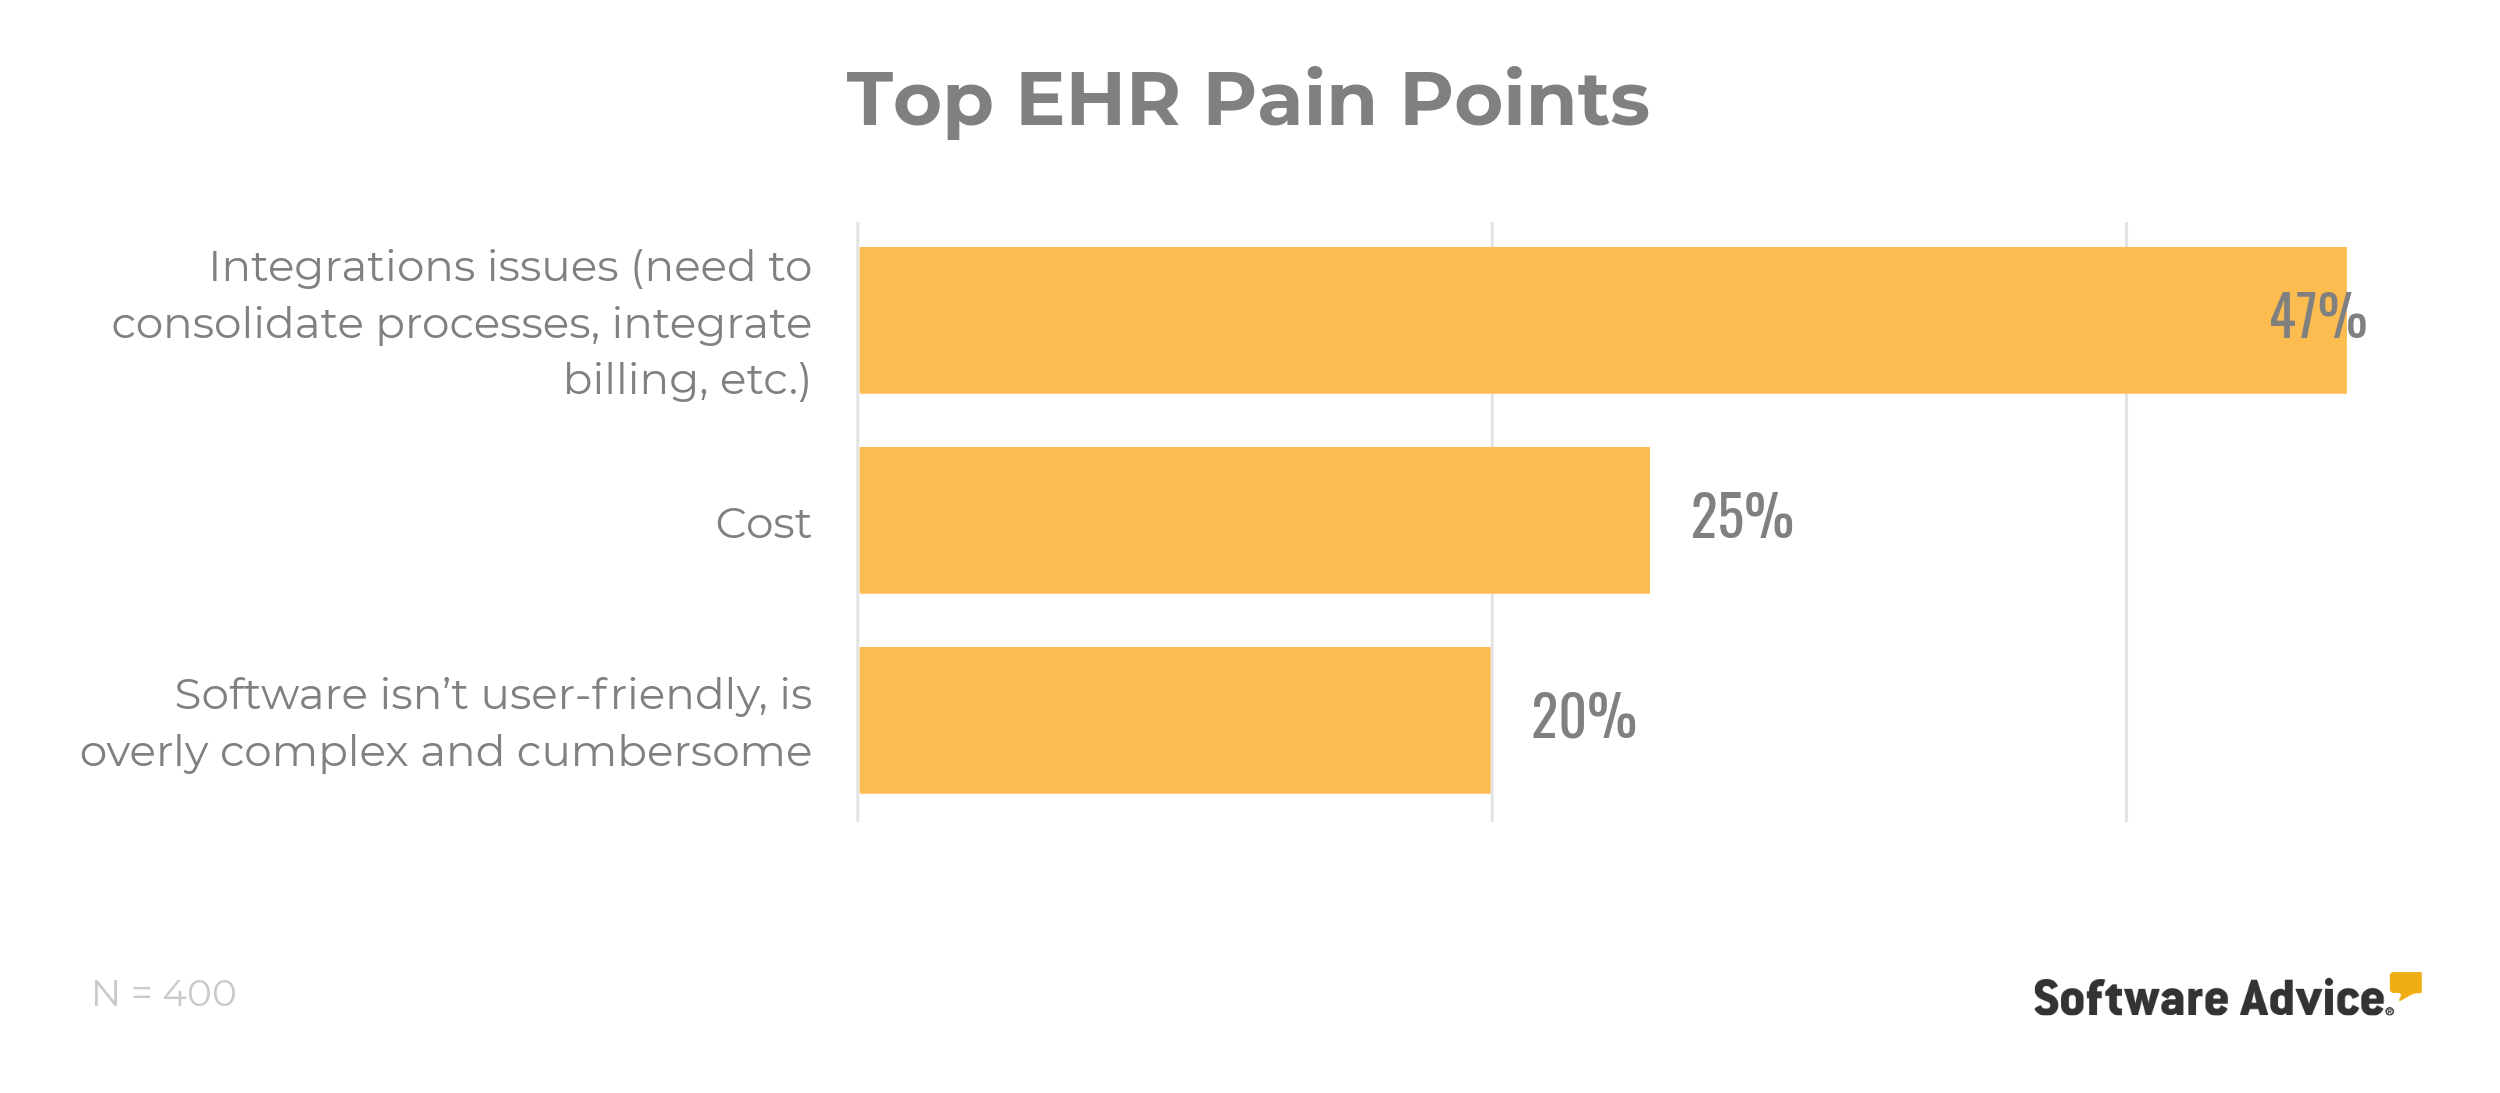 Top EHR pain points according to users